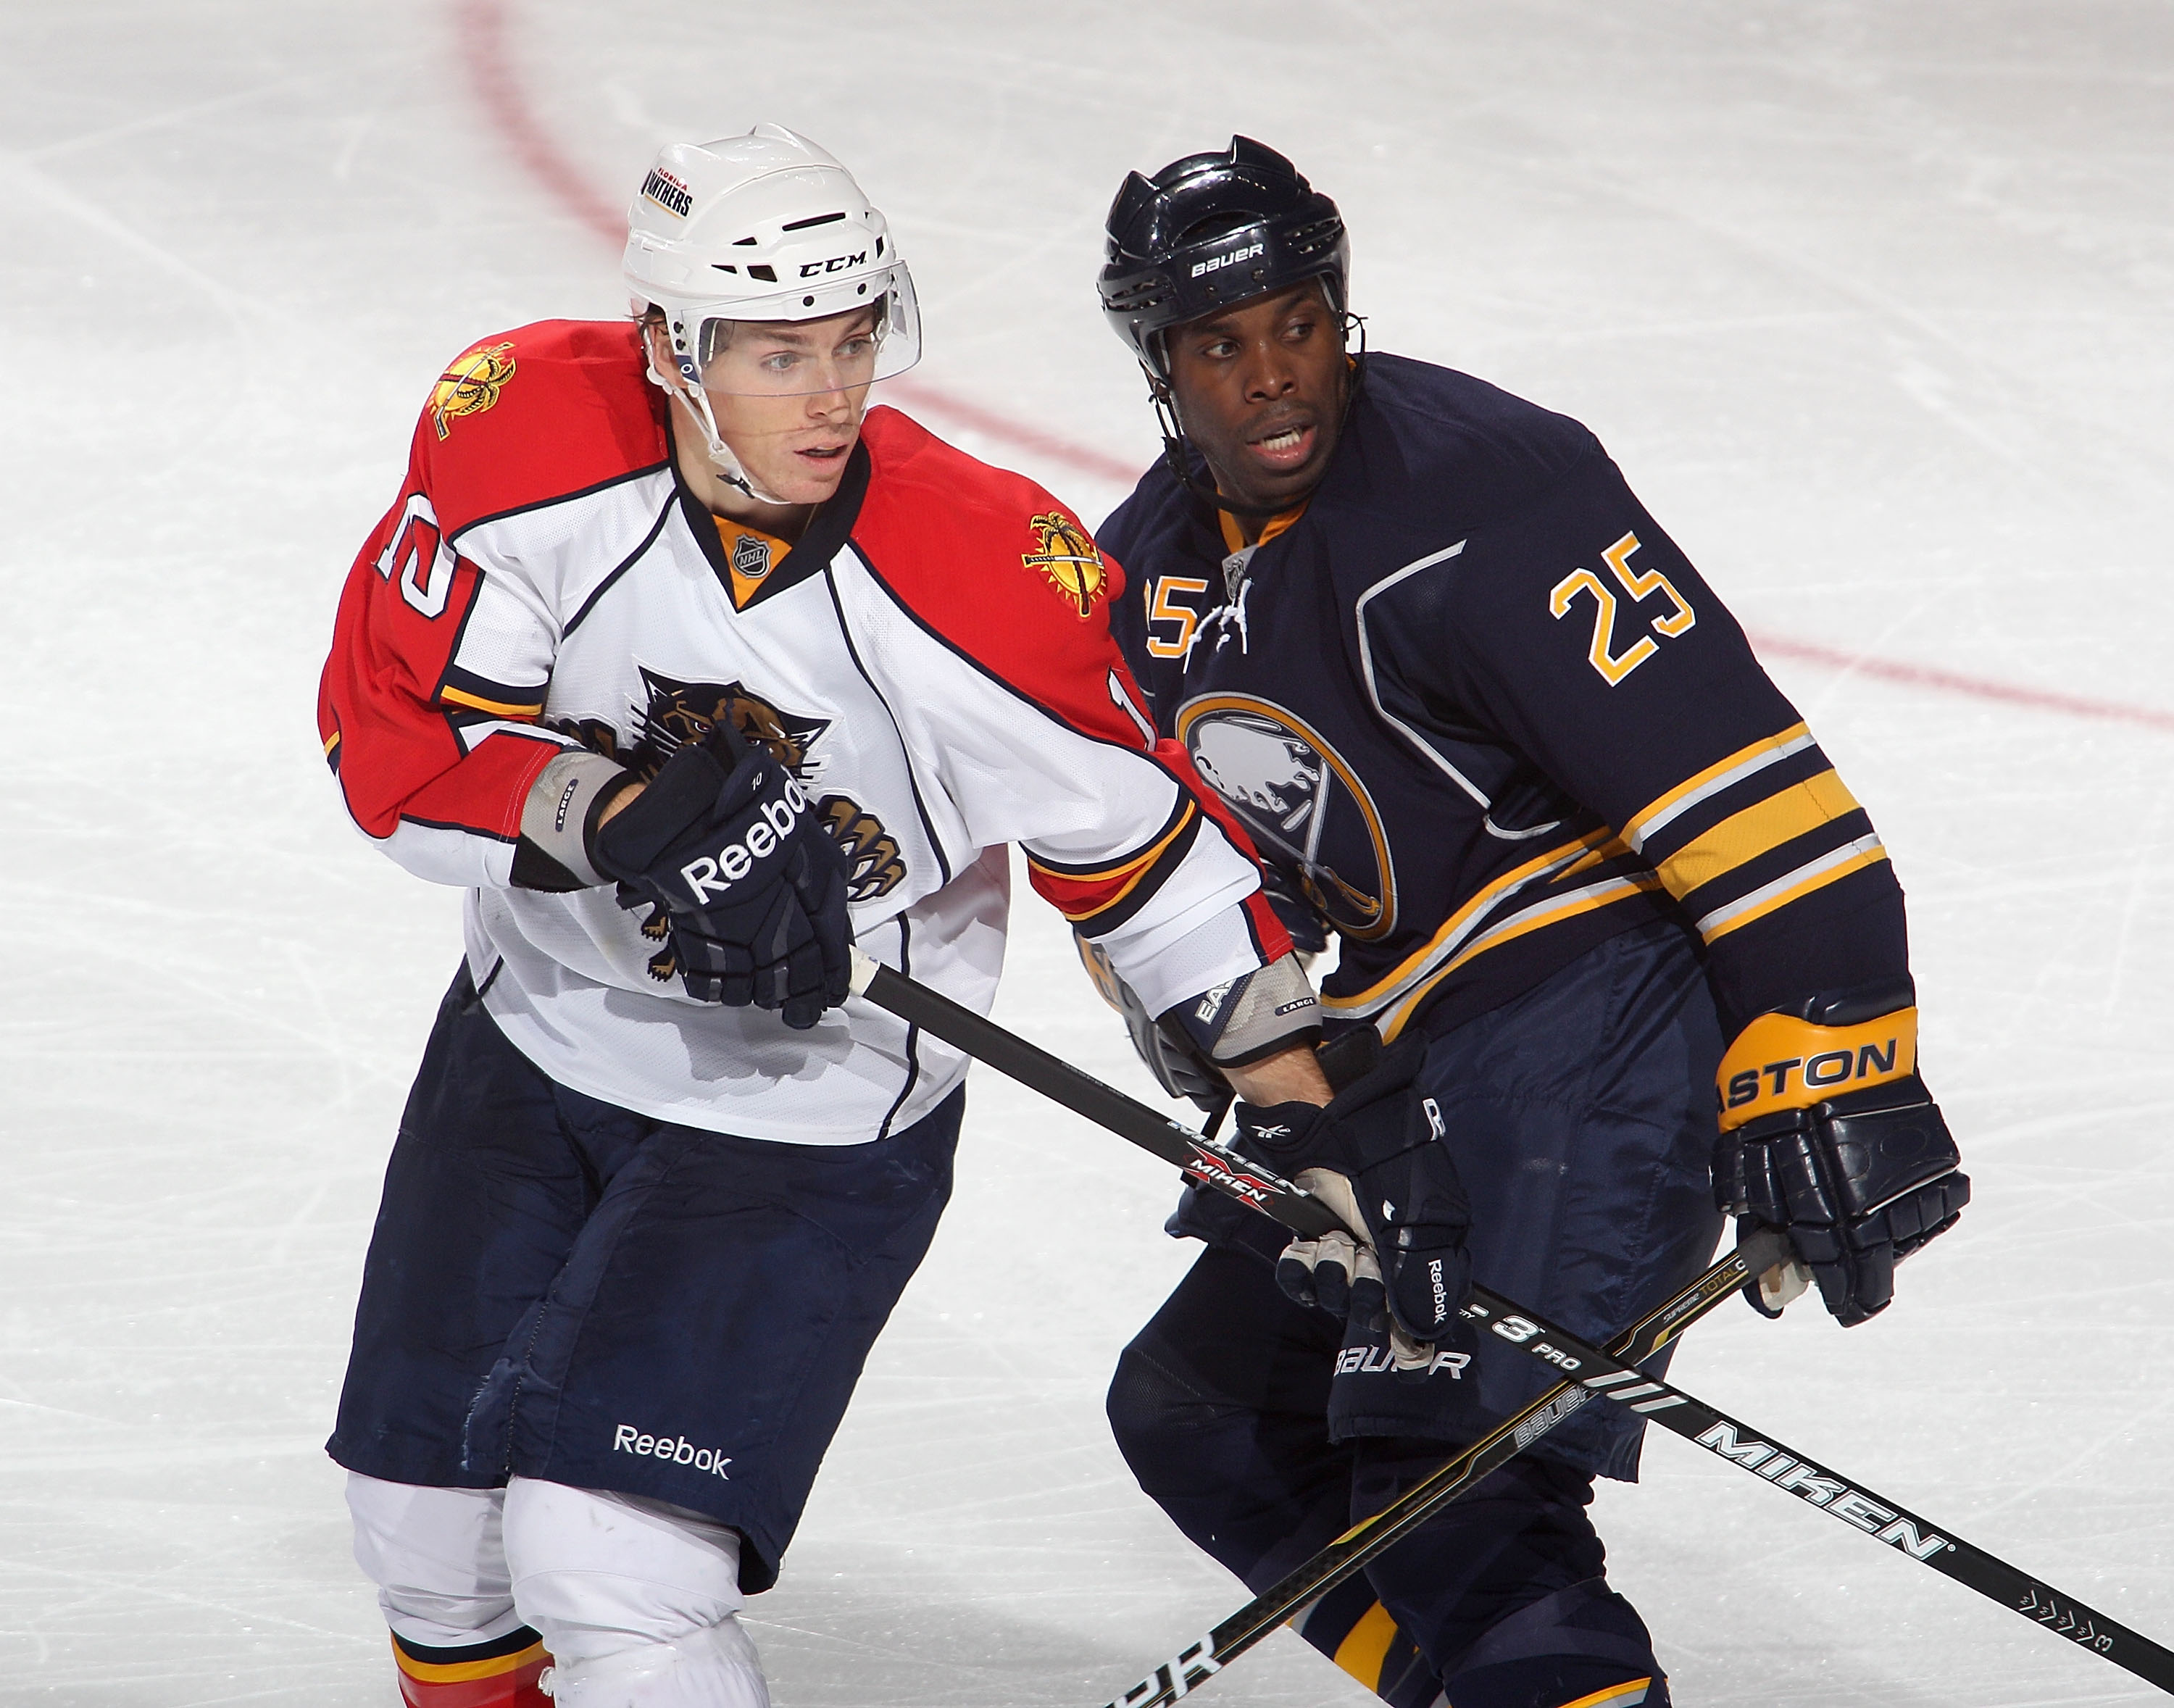 BUFFALO, NY - DECEMBER 23:  Mike Grier #25 of the Buffalo Sabres skates against  David Booth #10 of the Florida Panthers at HSBC Arena on December 23, 2010 in Buffalo, New York.  (Photo by Rick Stewart/Getty Images)